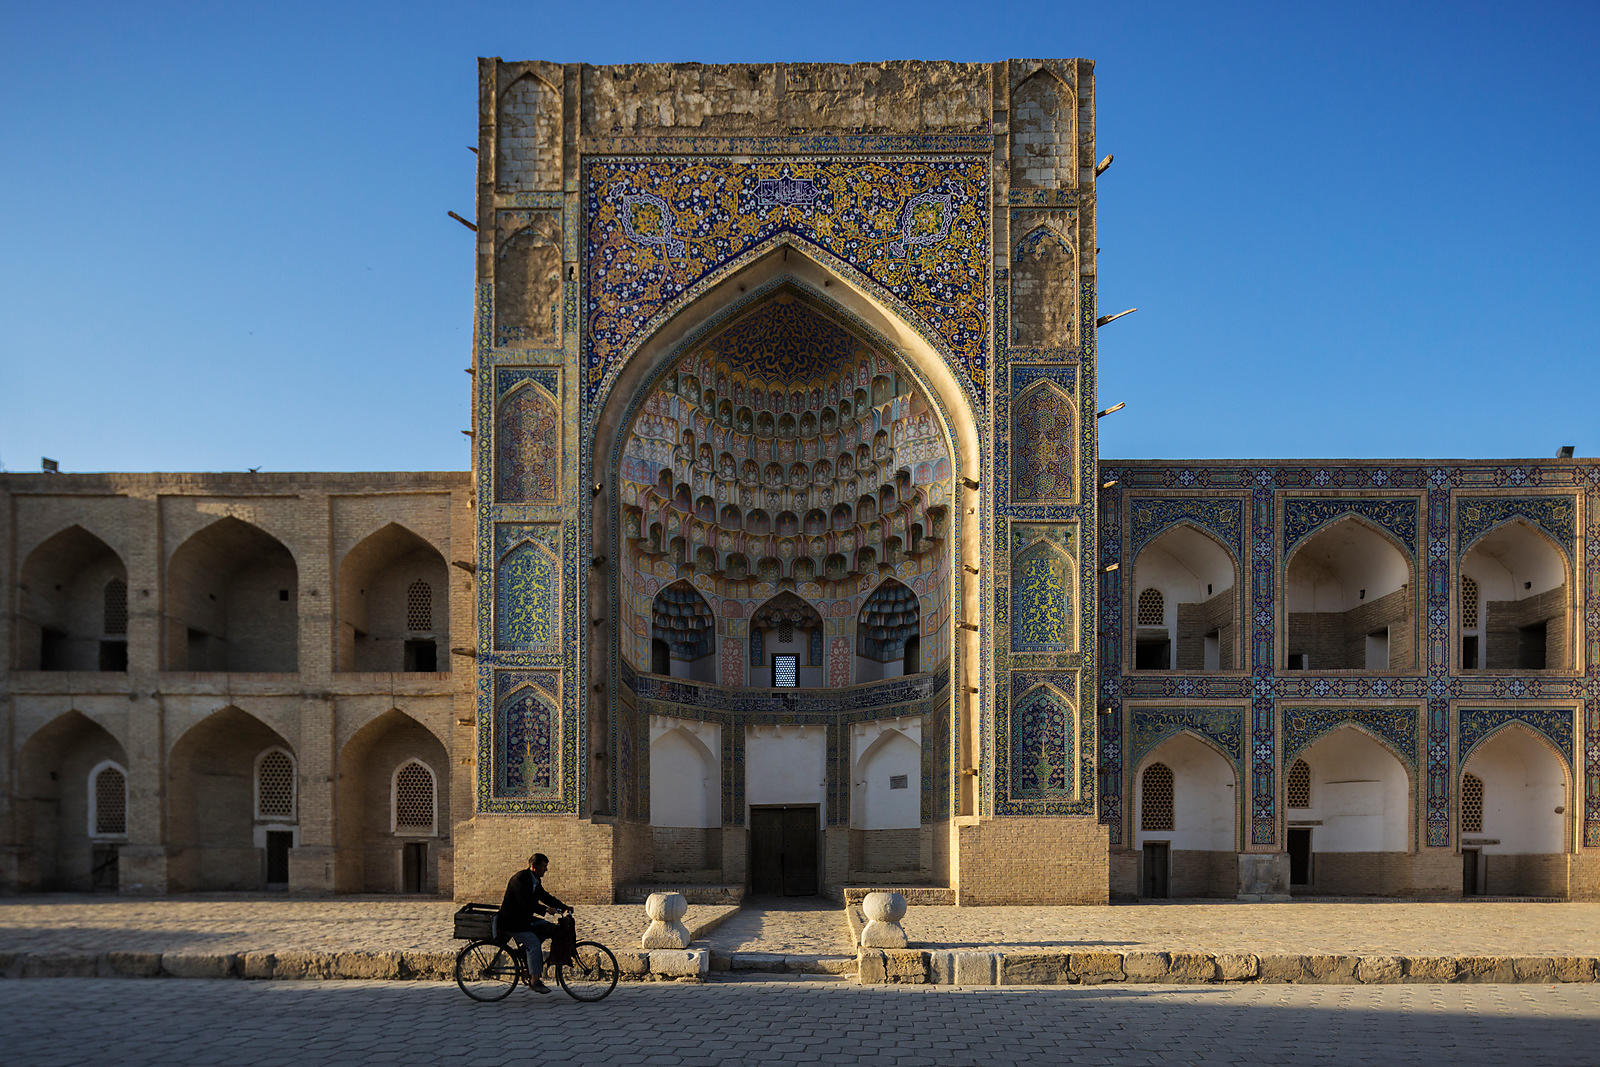 Man Riding a bicycle in front of the Abdul Azizxon Masdrassah